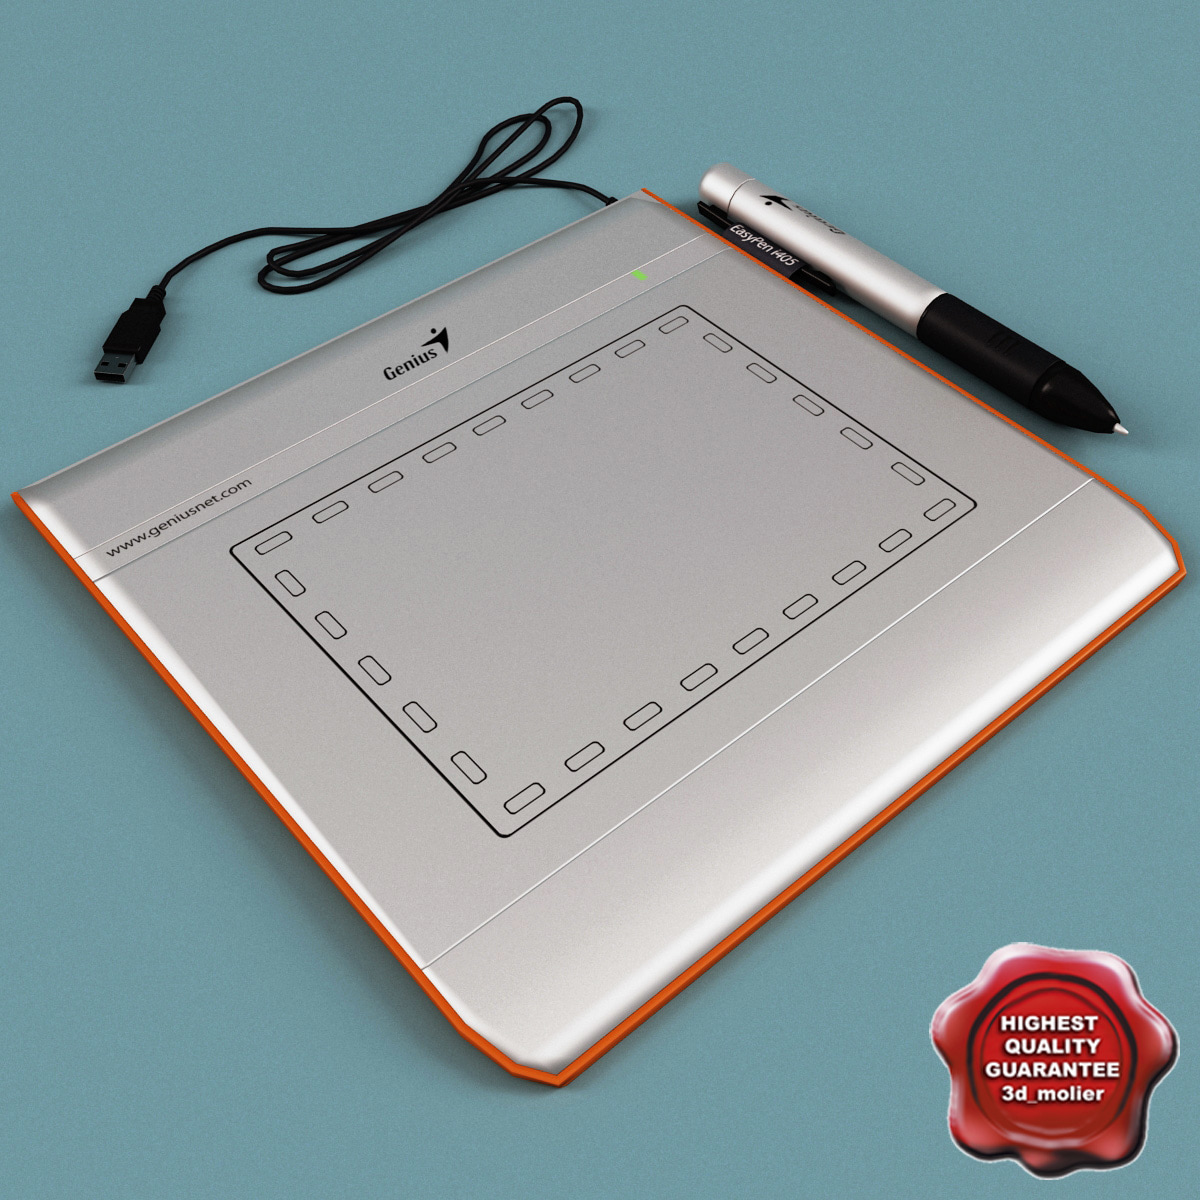 Graphic_Tablet_Genius_EasyPen_i405_00.jpg